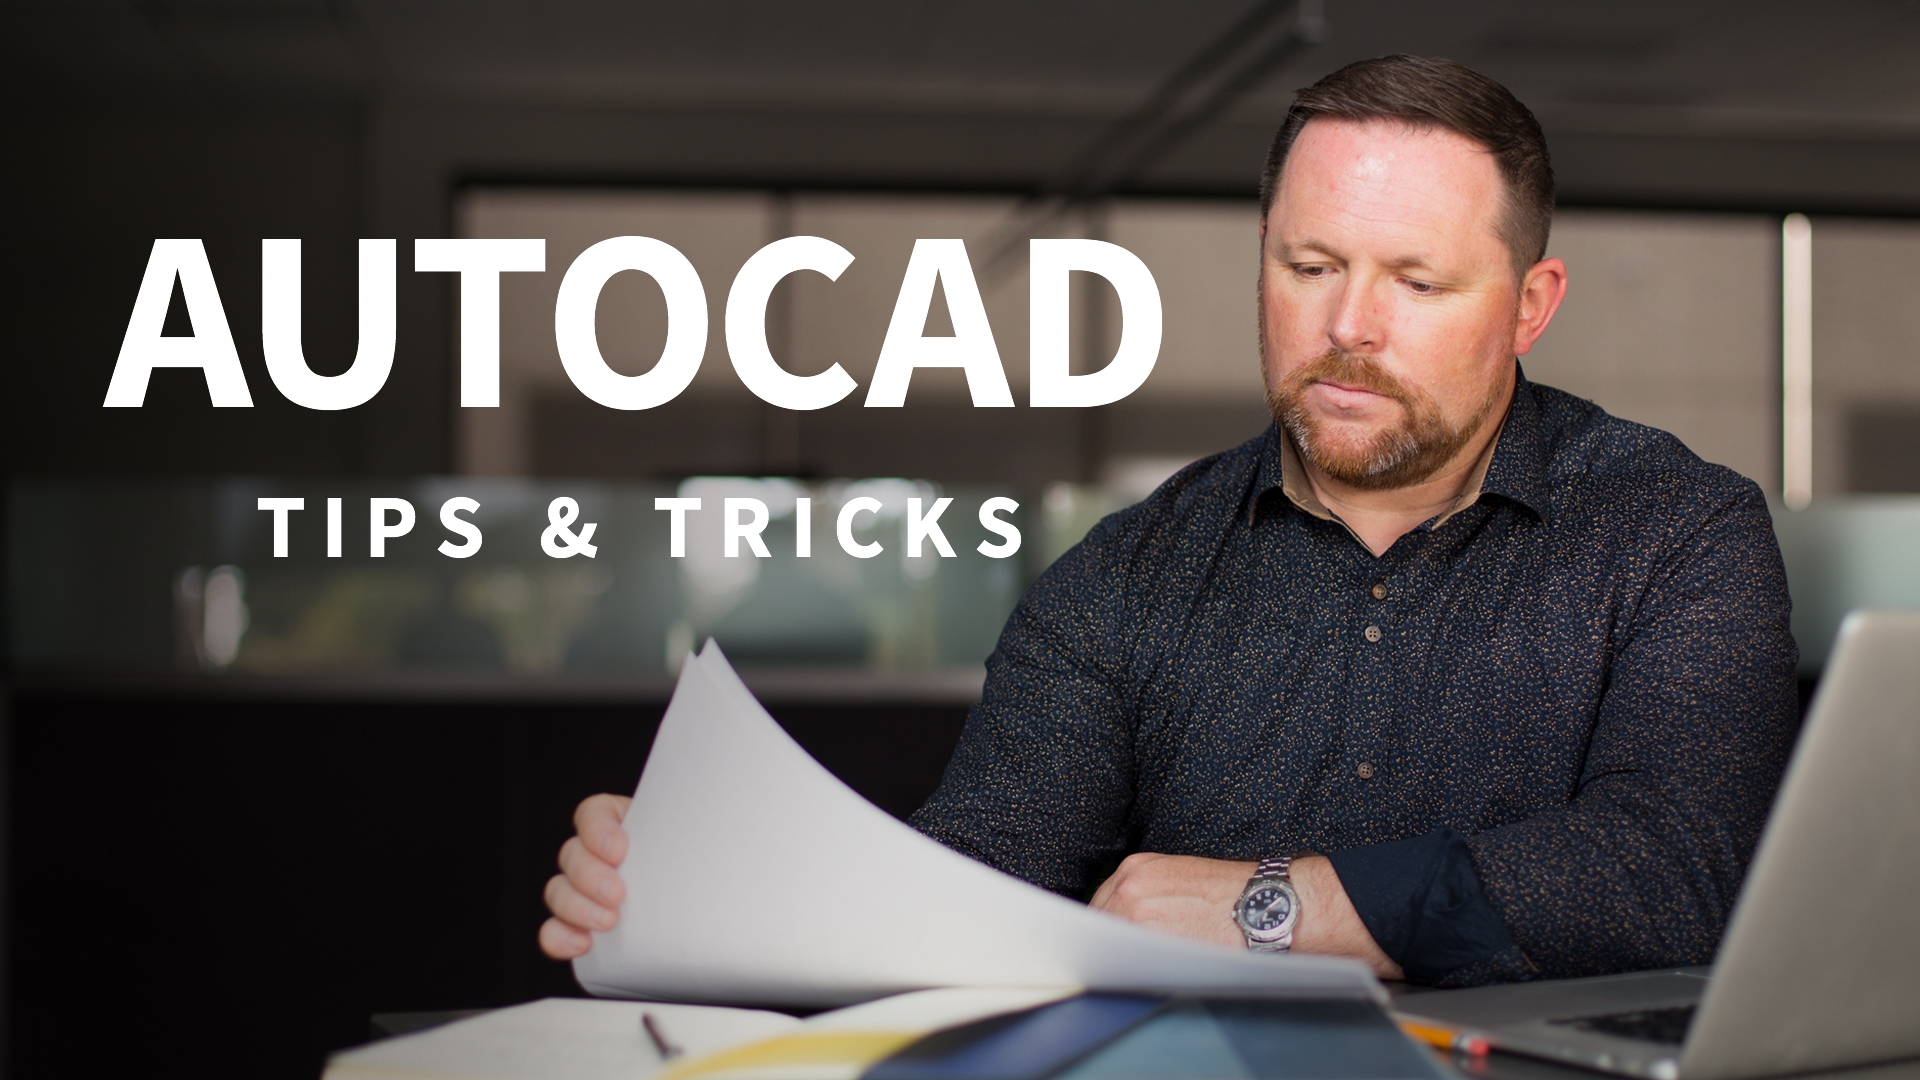 AutoCAD: Tips & Tricks